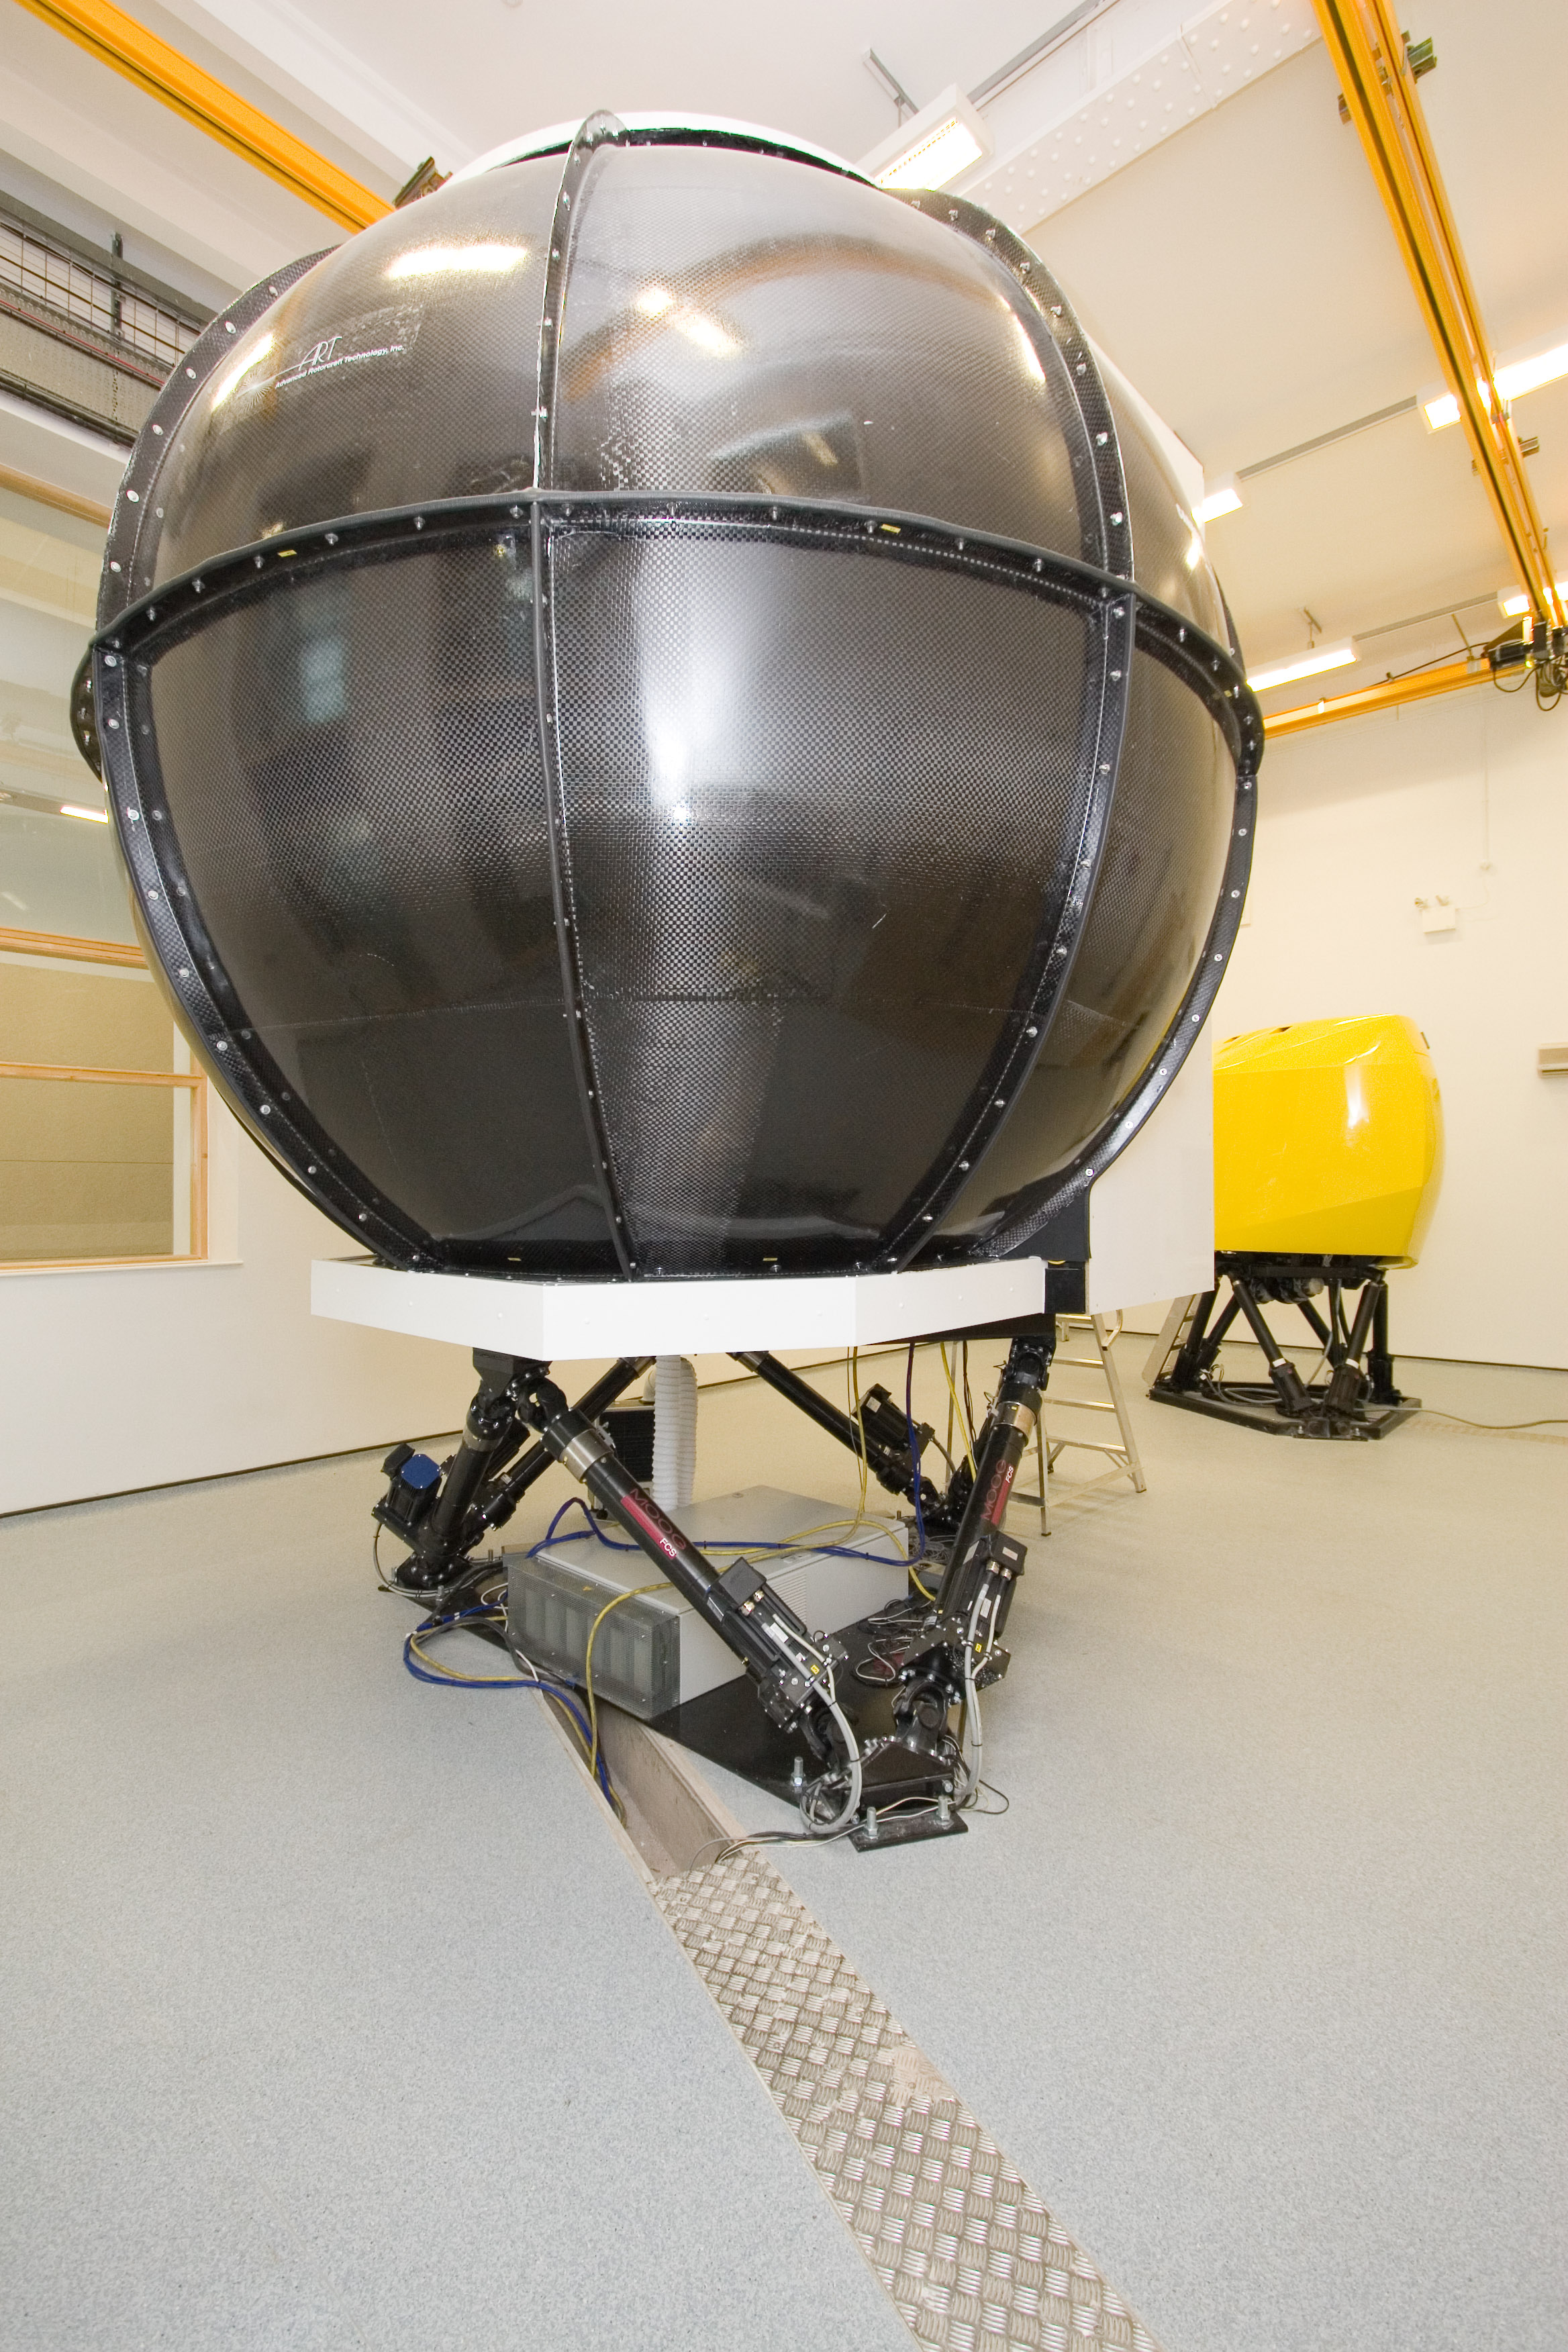 Handling Qualities research is conducted in our world class Flight Simulation Research Facilty